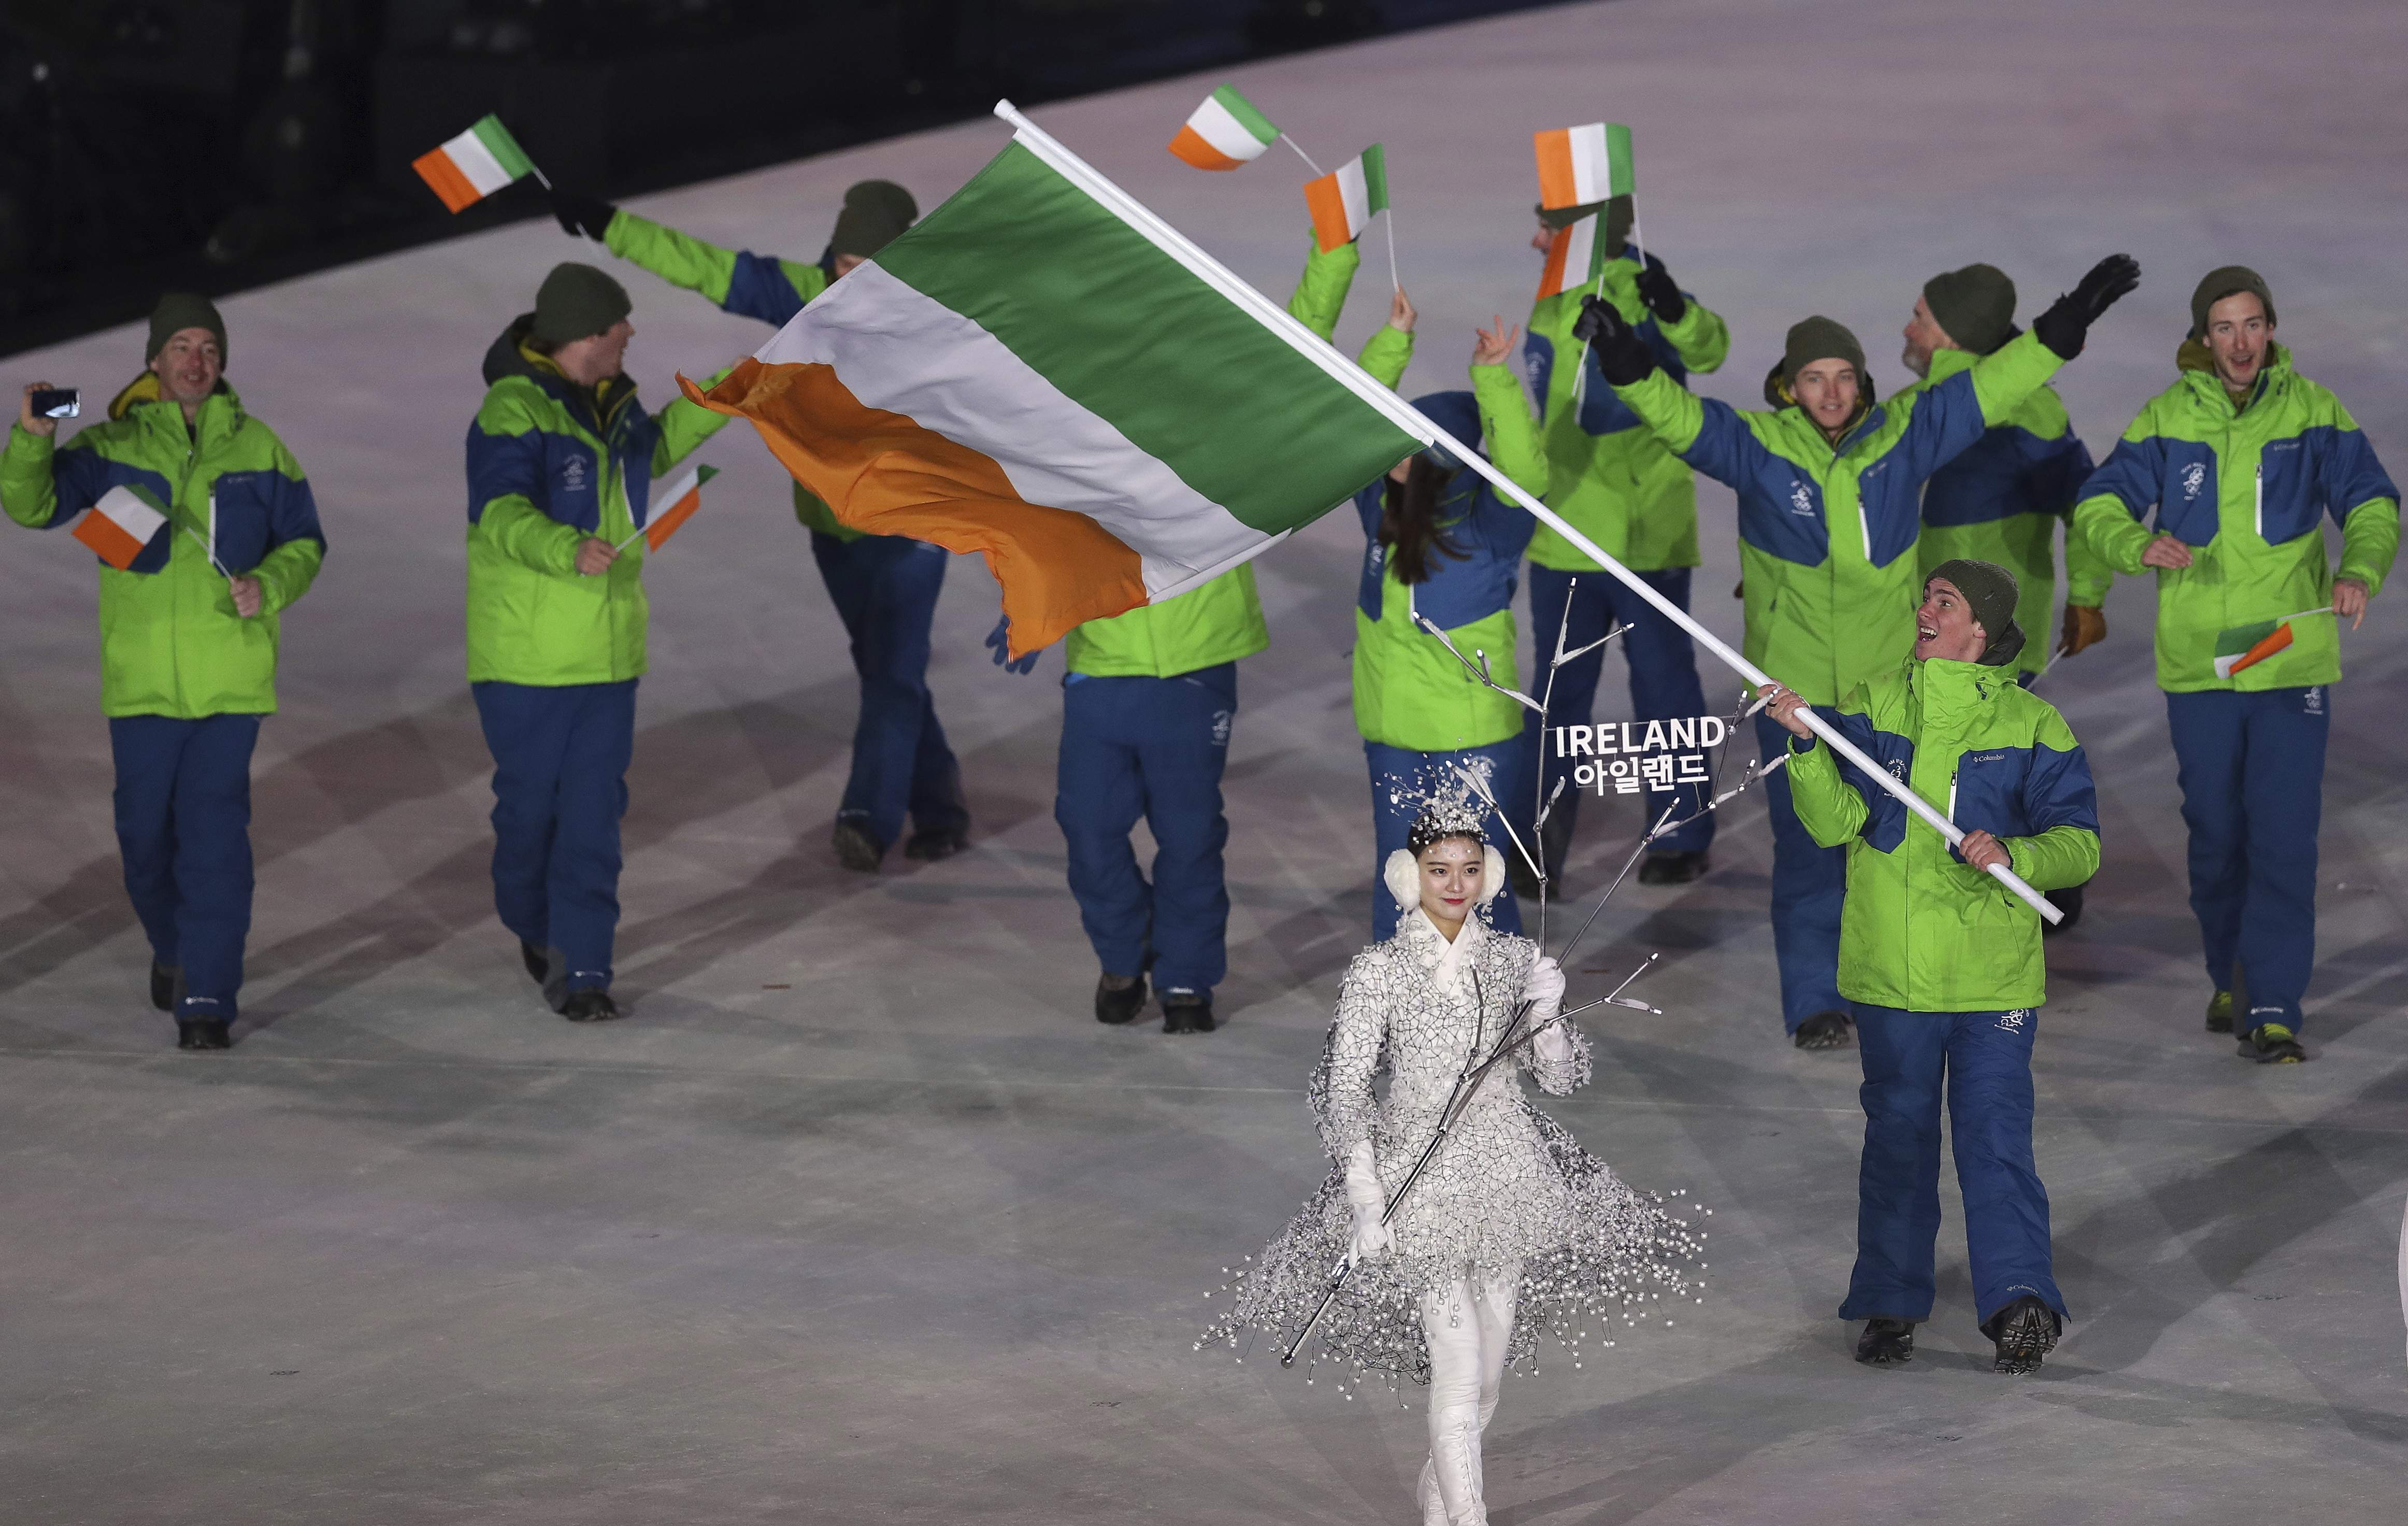 Seamus O'Connor carries the flag of Ireland during the opening ceremony of the 2018 Winter Olympics in Pyeongchang, South Korea, Friday, Feb. 9, 2018. (AP Photo/Michael Sohn)